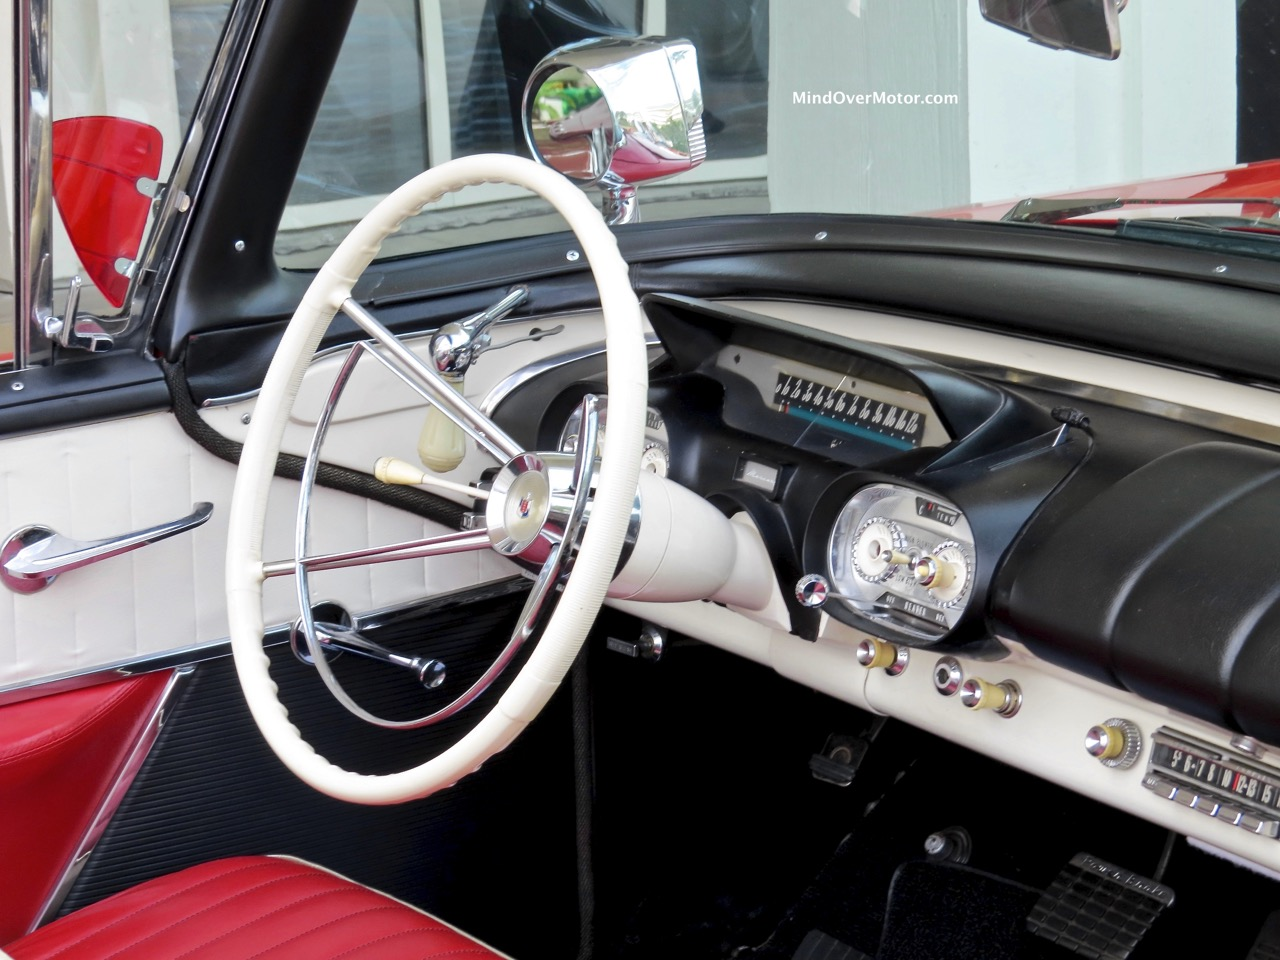 1957 Mercury Turnpike Cruiser Interior